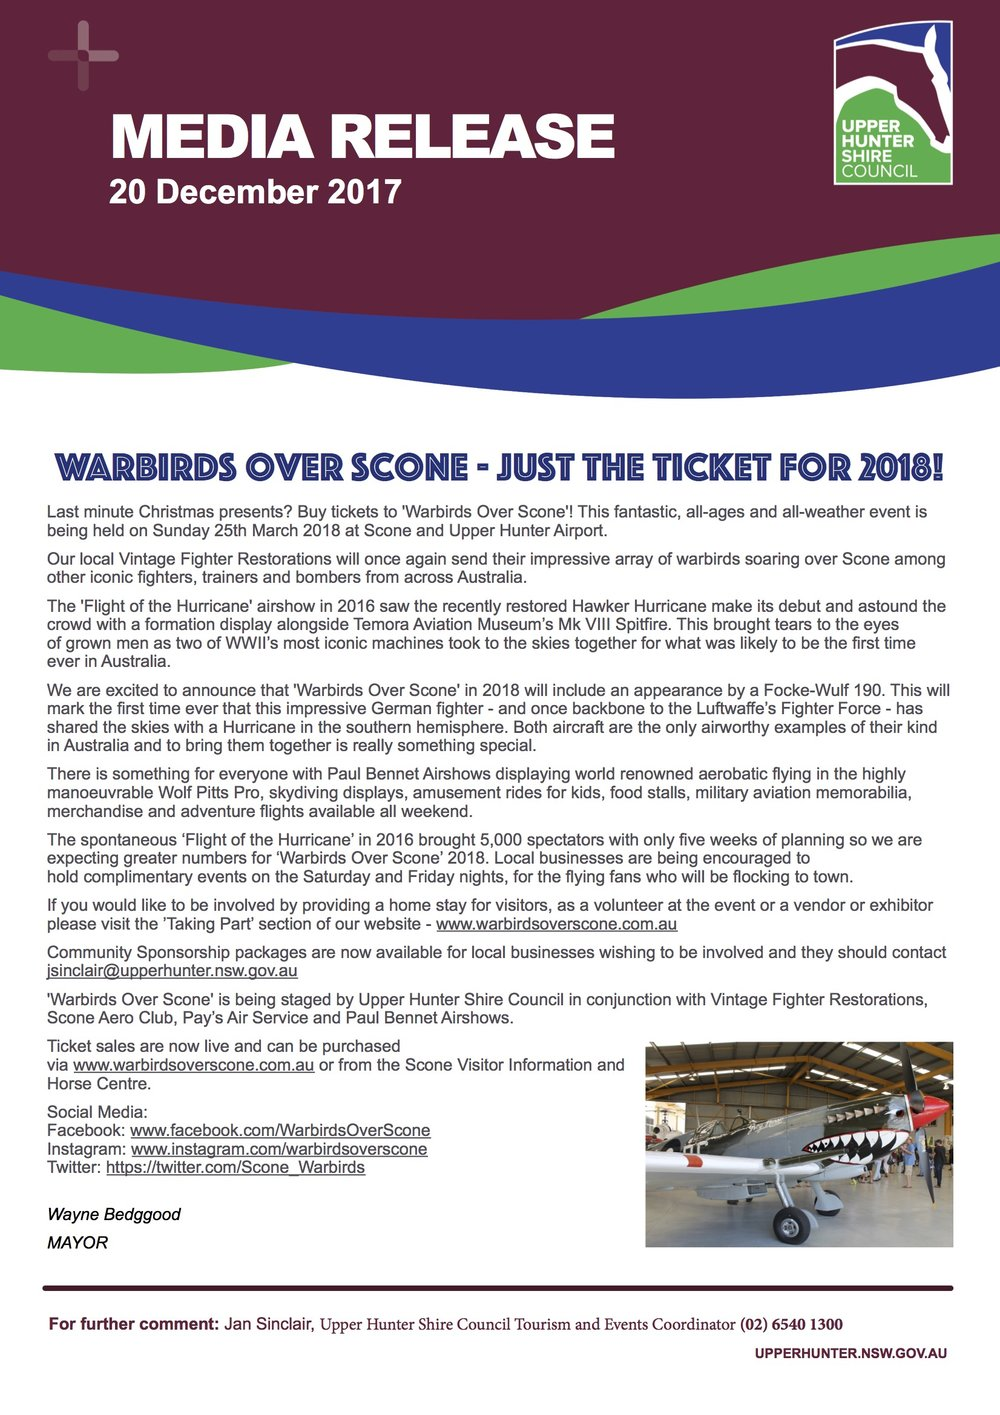 Media Release - Warbirds Over Scone just the ticket for 2018 - December 2017.jpg